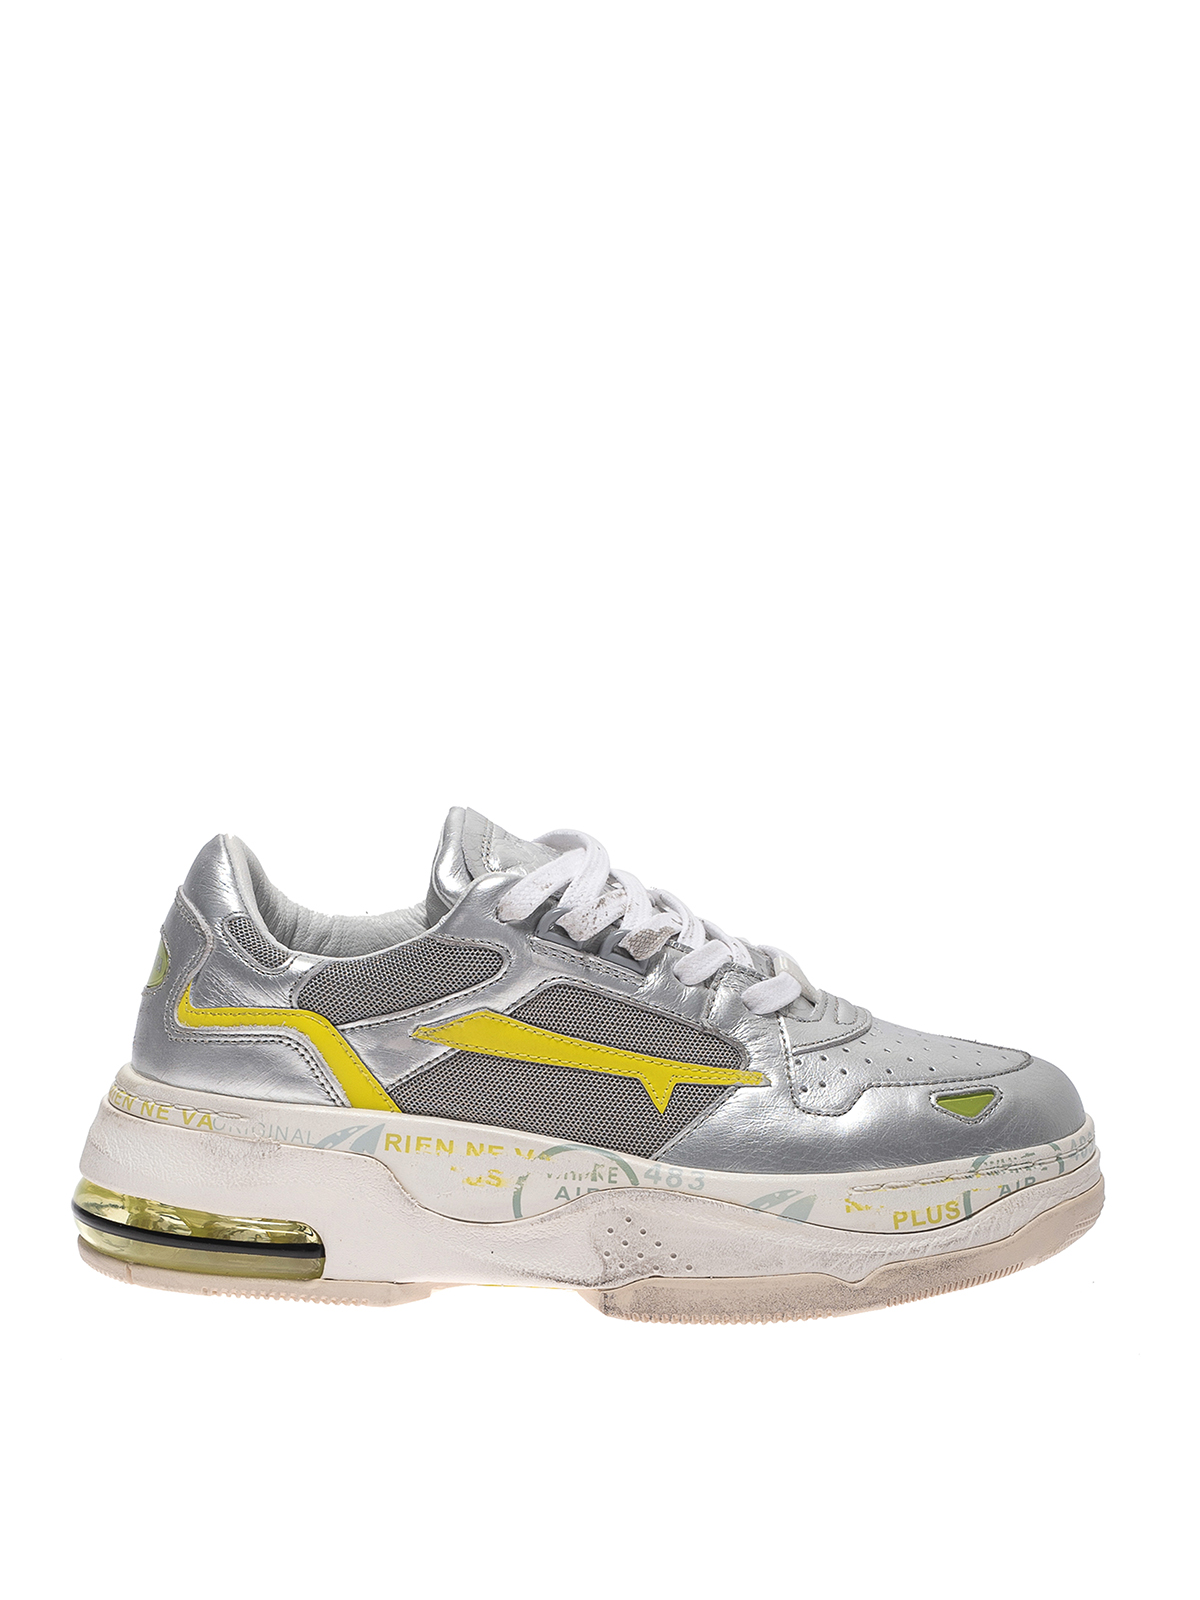 Premiata Leathers Draked sneakers